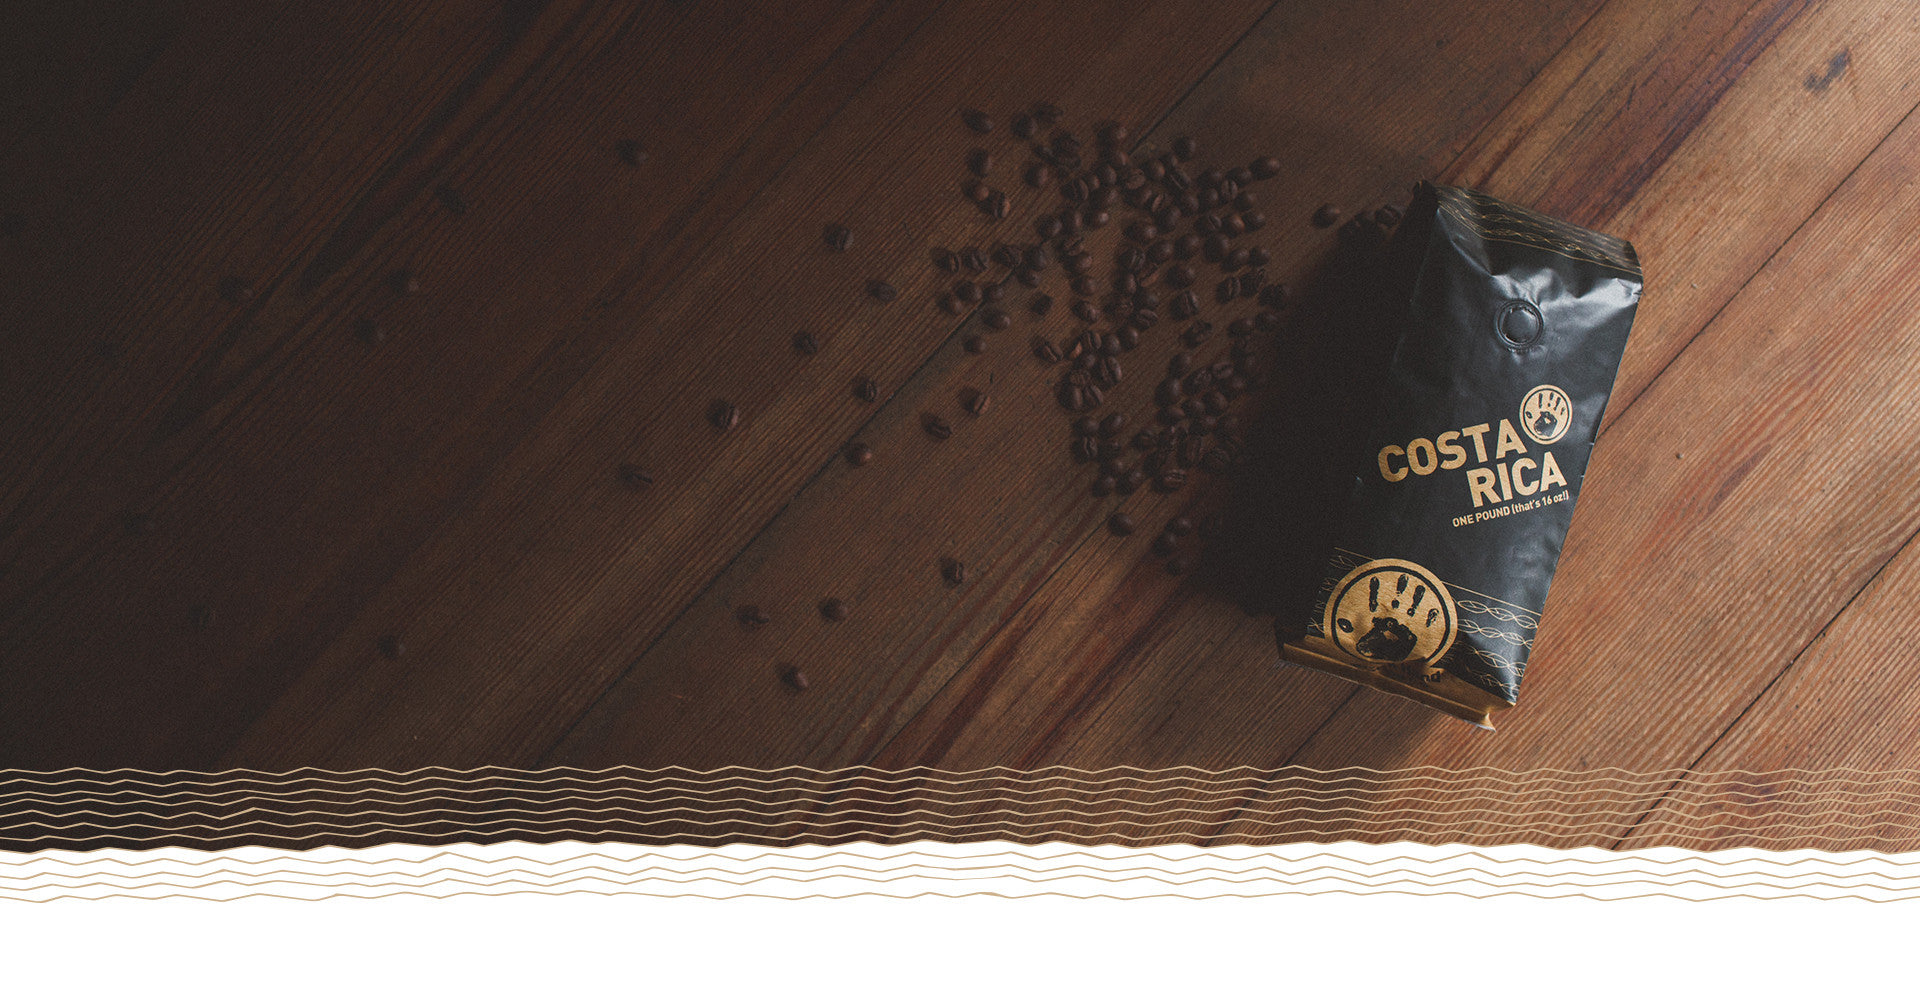 SHOP BLACK HAND COFFEE CO.